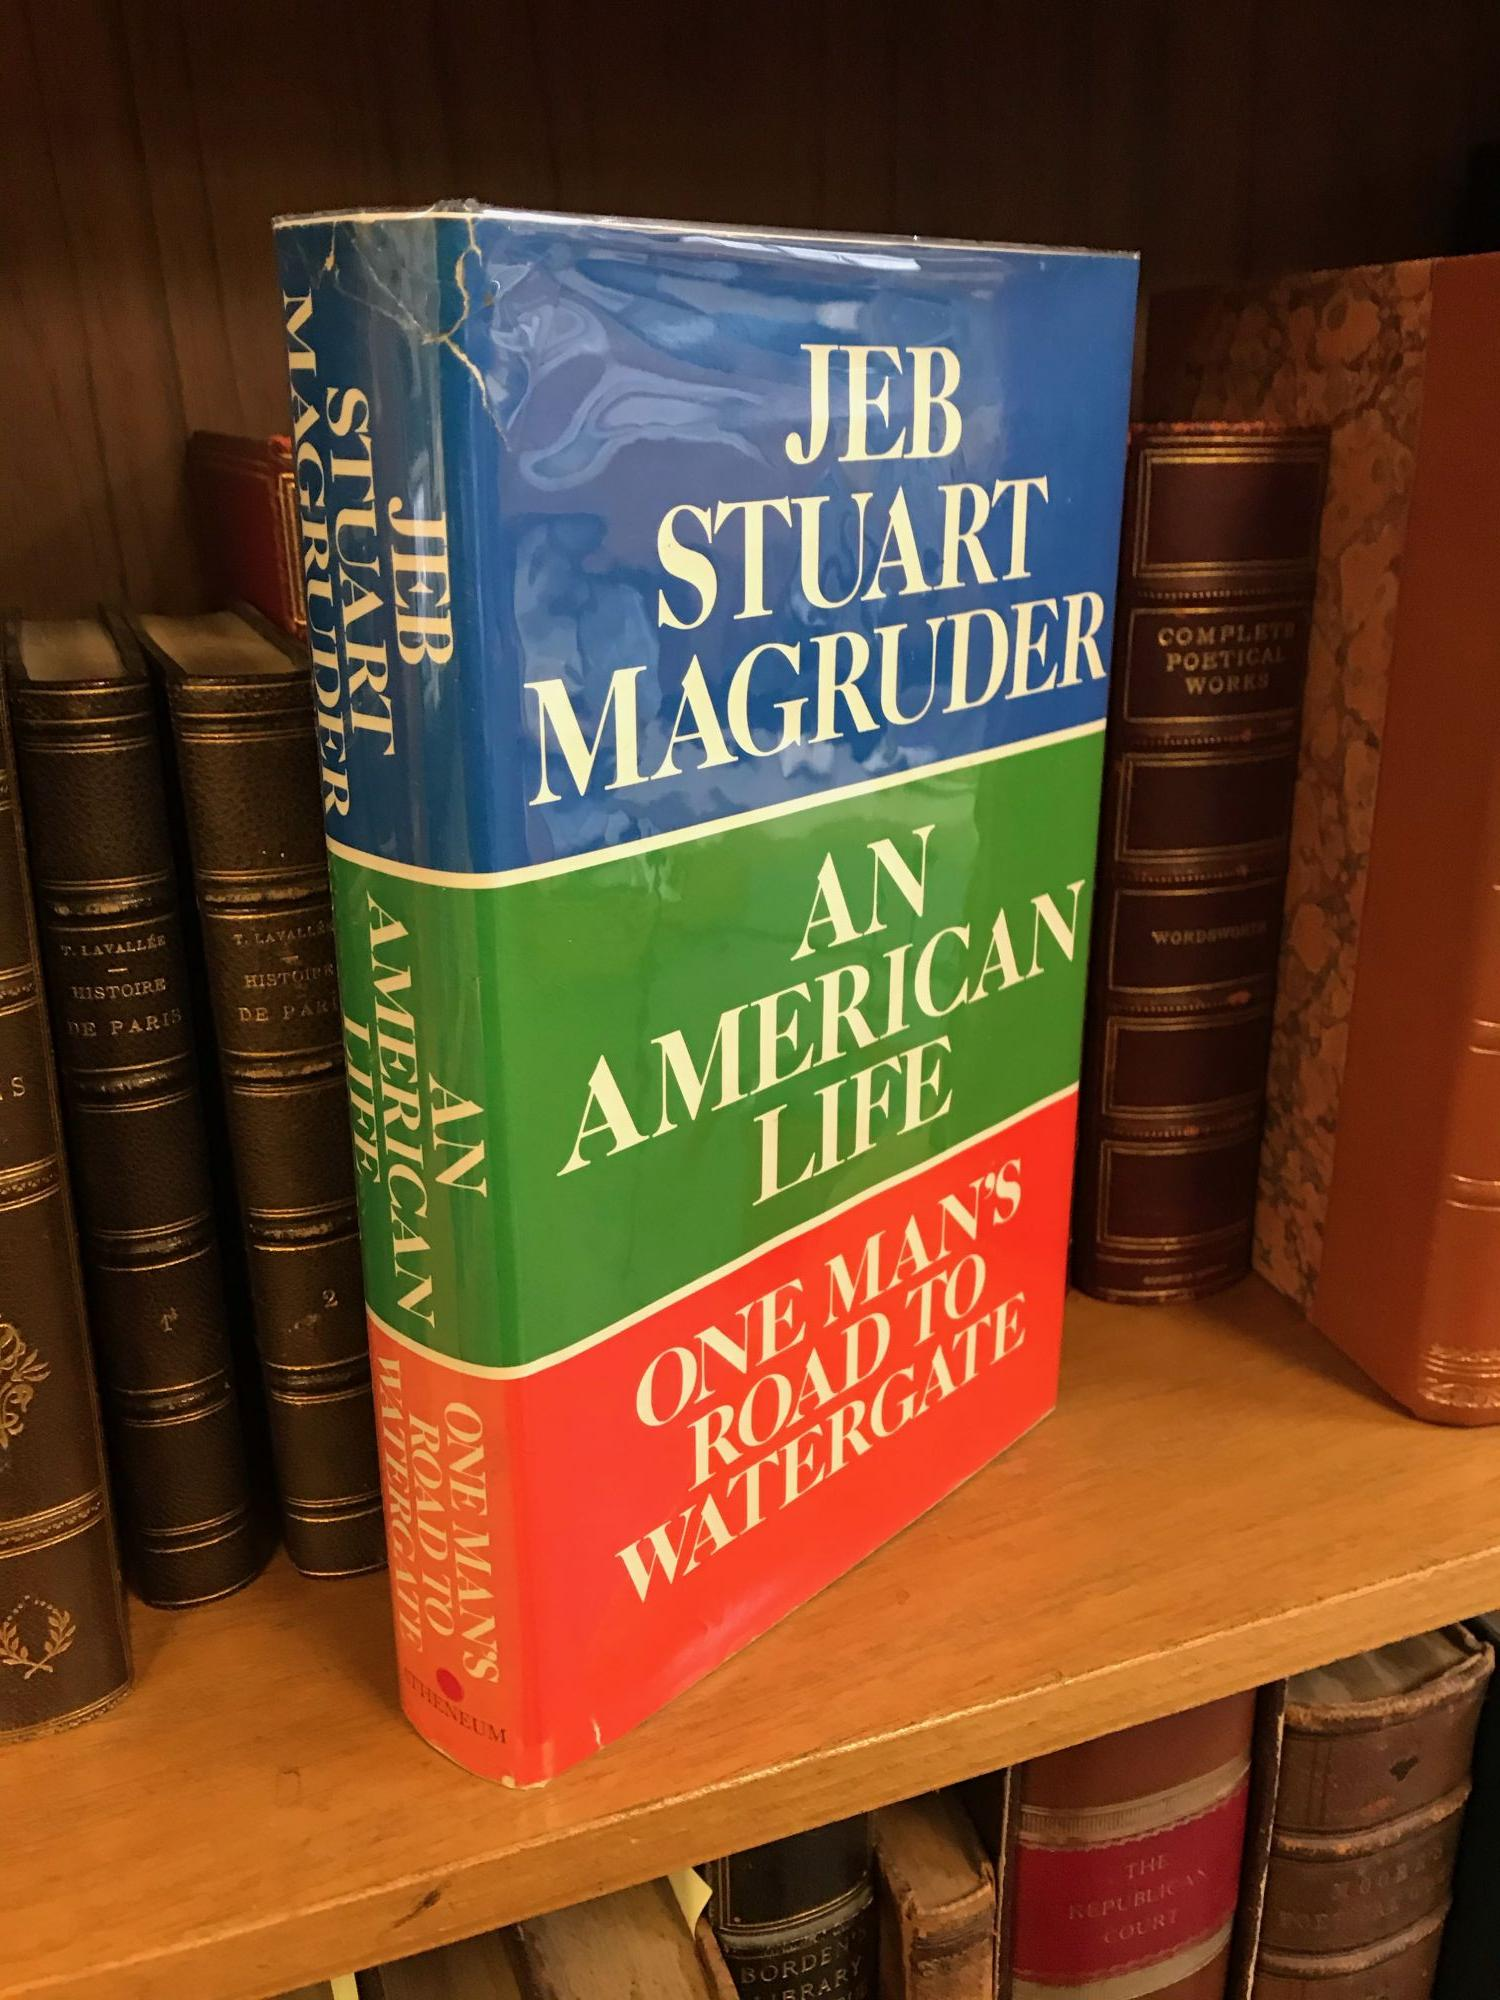 AN AMERICAN LIFE: ONE MAN'S ROAD TO WATERGATE [SIGNED]. Jeb Stuart Magruder.